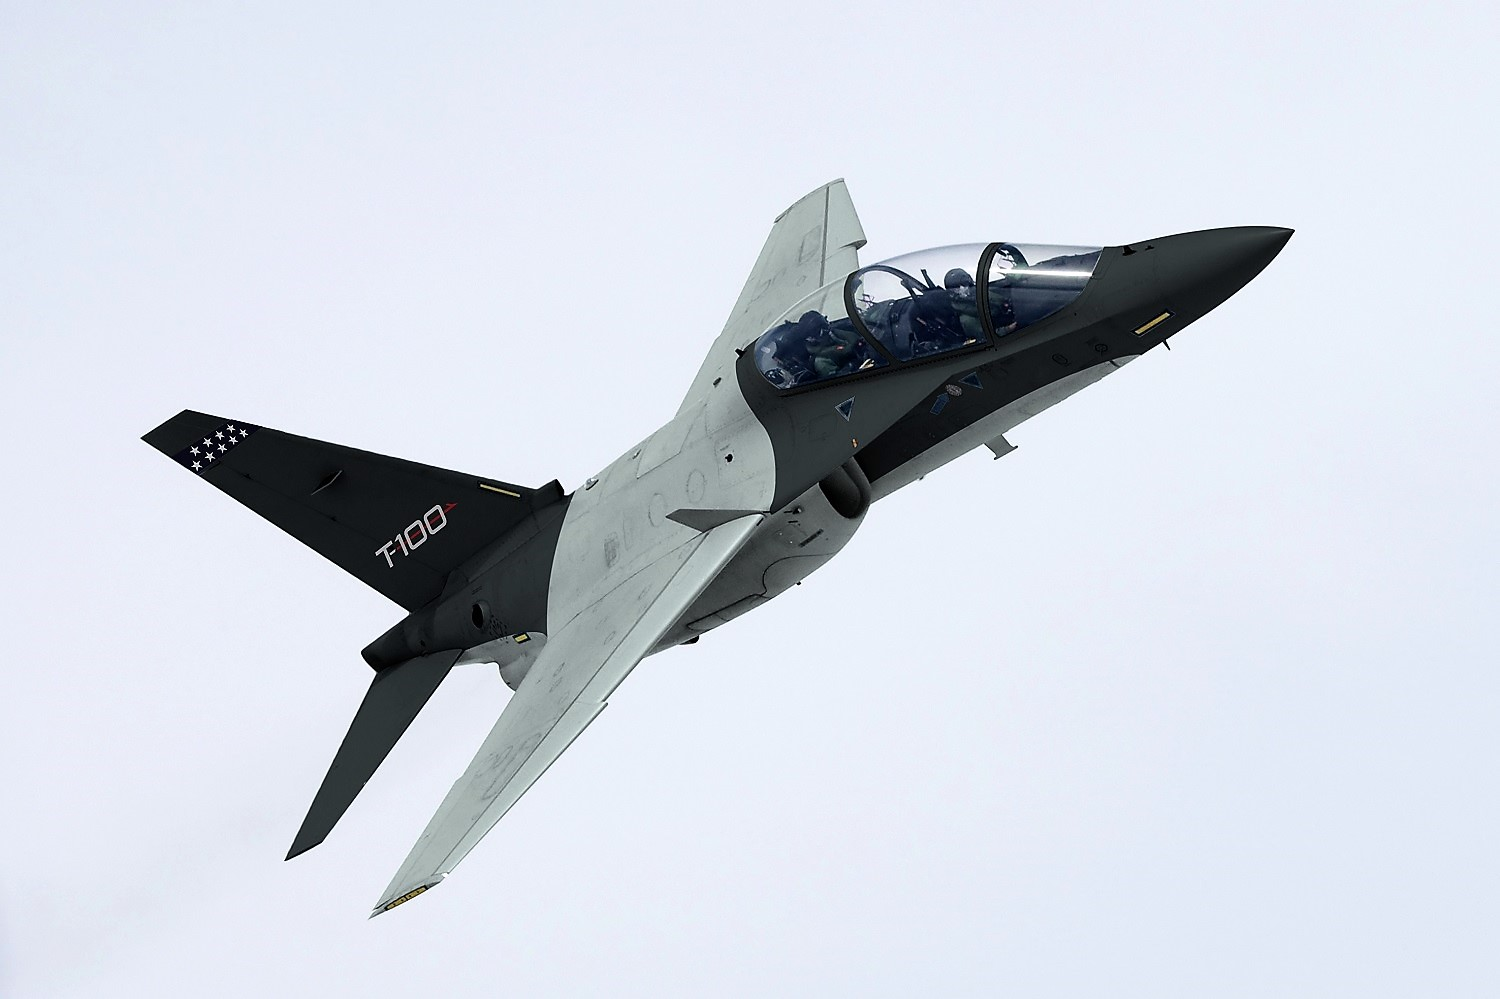 Leonardo's T-100 trainer is already in use by air forces around the world. (Leonardo)